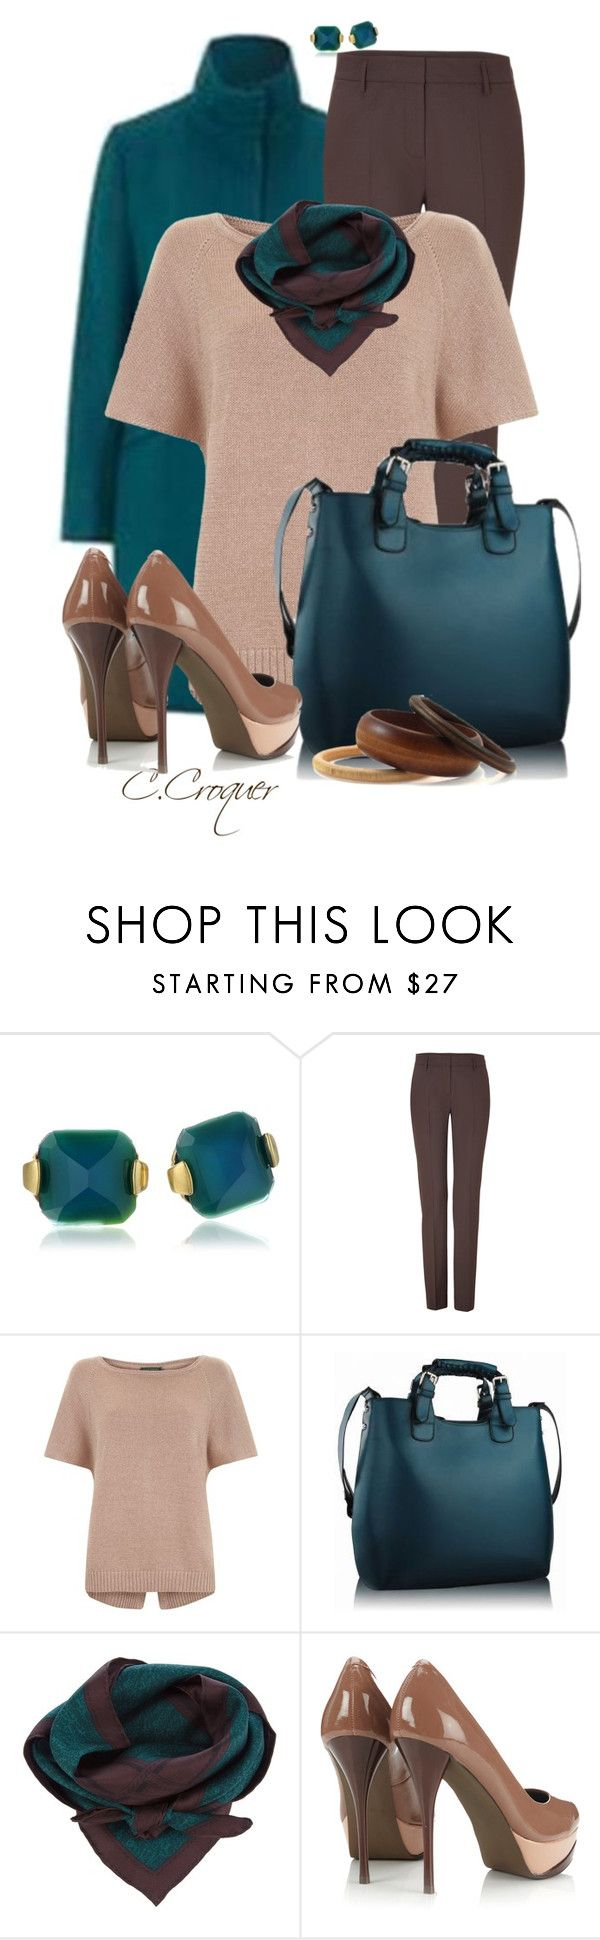 """Teal&Brown Trenc Coat Outfit"" by ccroquer ❤ liked on Polyvore featuring Sam Edelman, House of Fraser, Piazza Sempione, Mint Velvet, Burberry and Wallis"